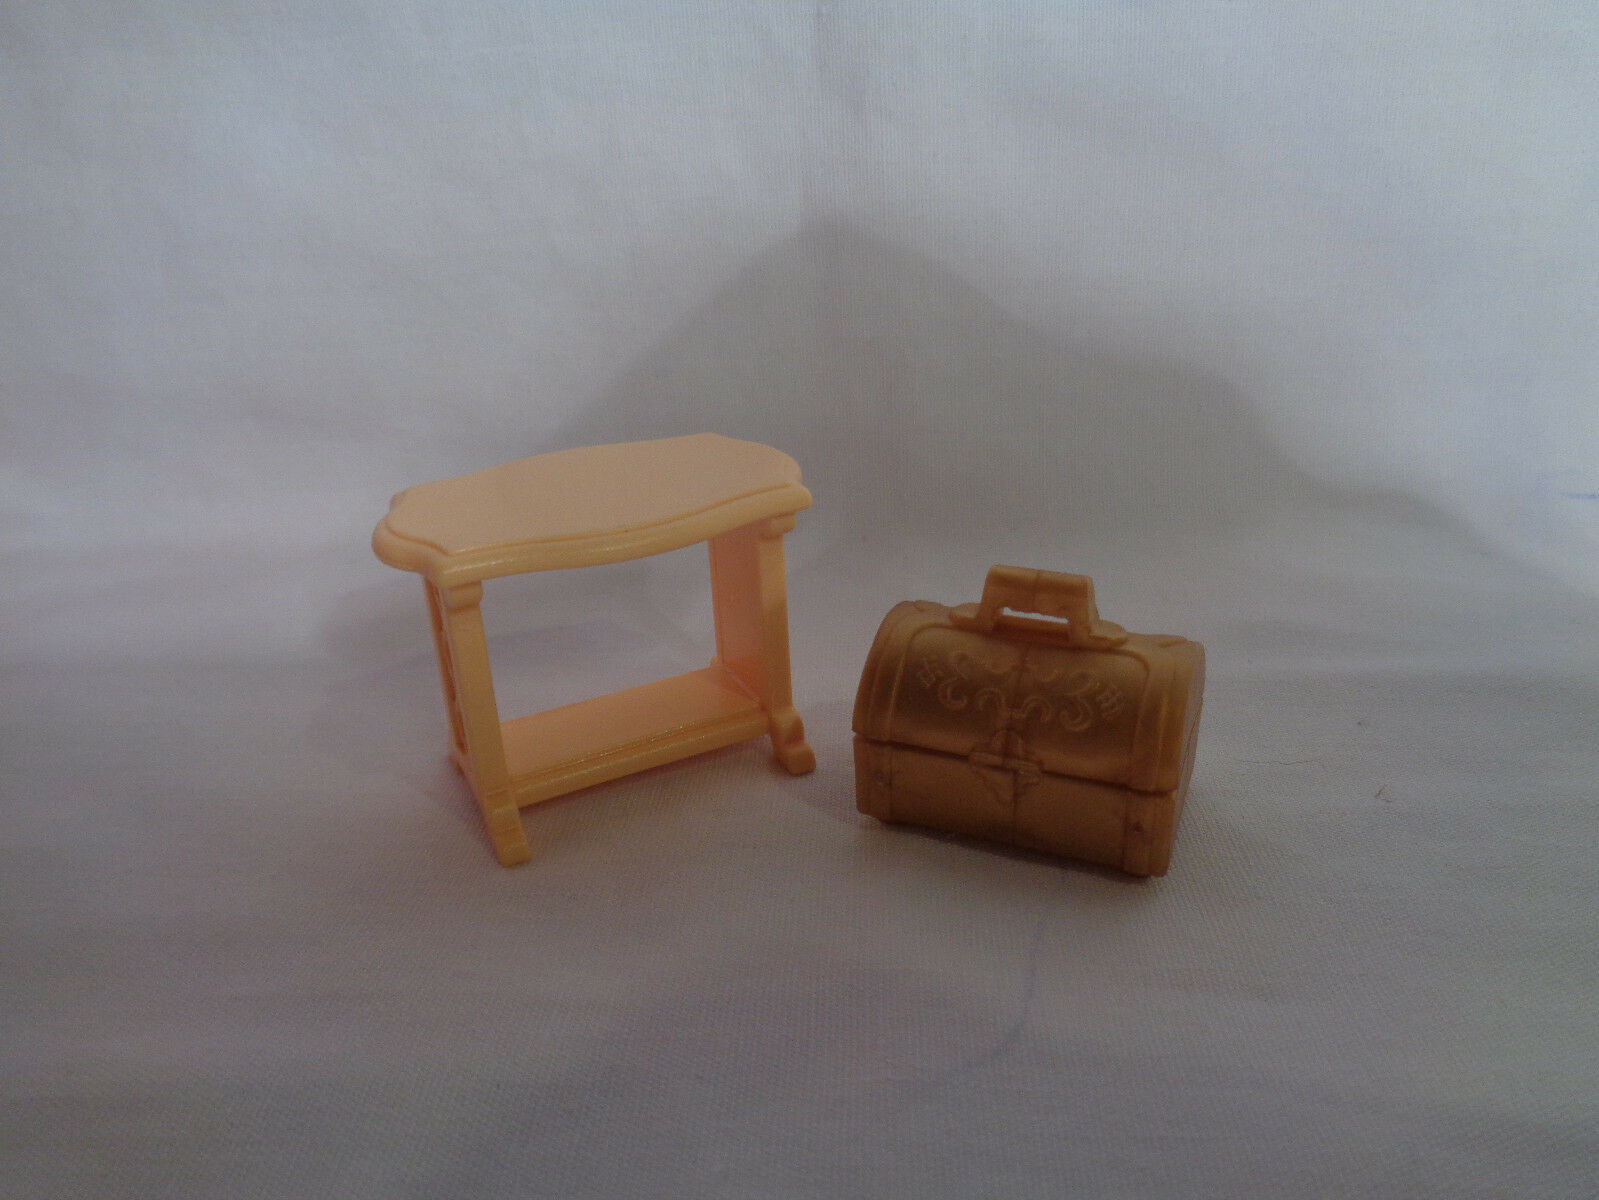 Playmobil Princess Castle Replacement Tan Accent Table & Small Chest